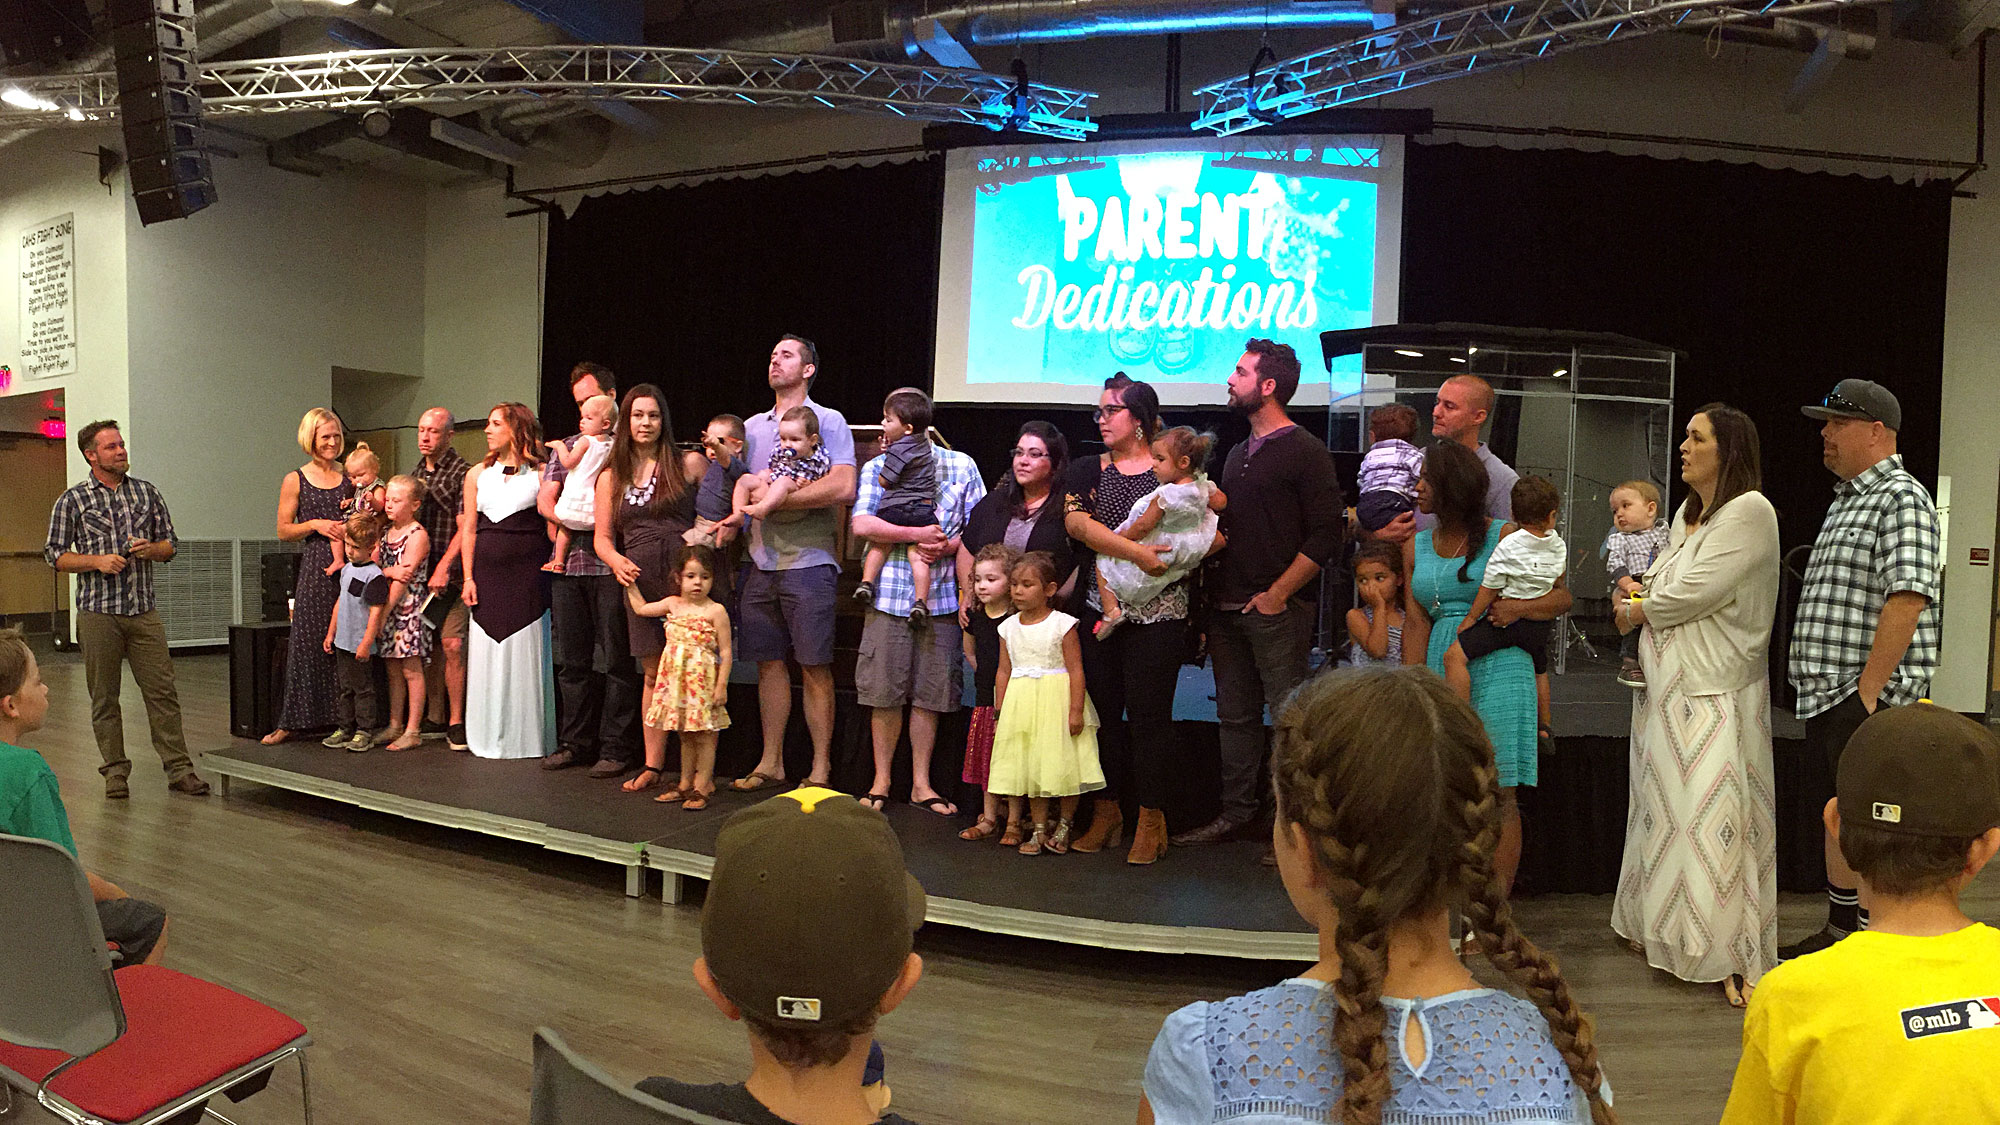 Parent Dedications at Life Mission Church in Escondido.